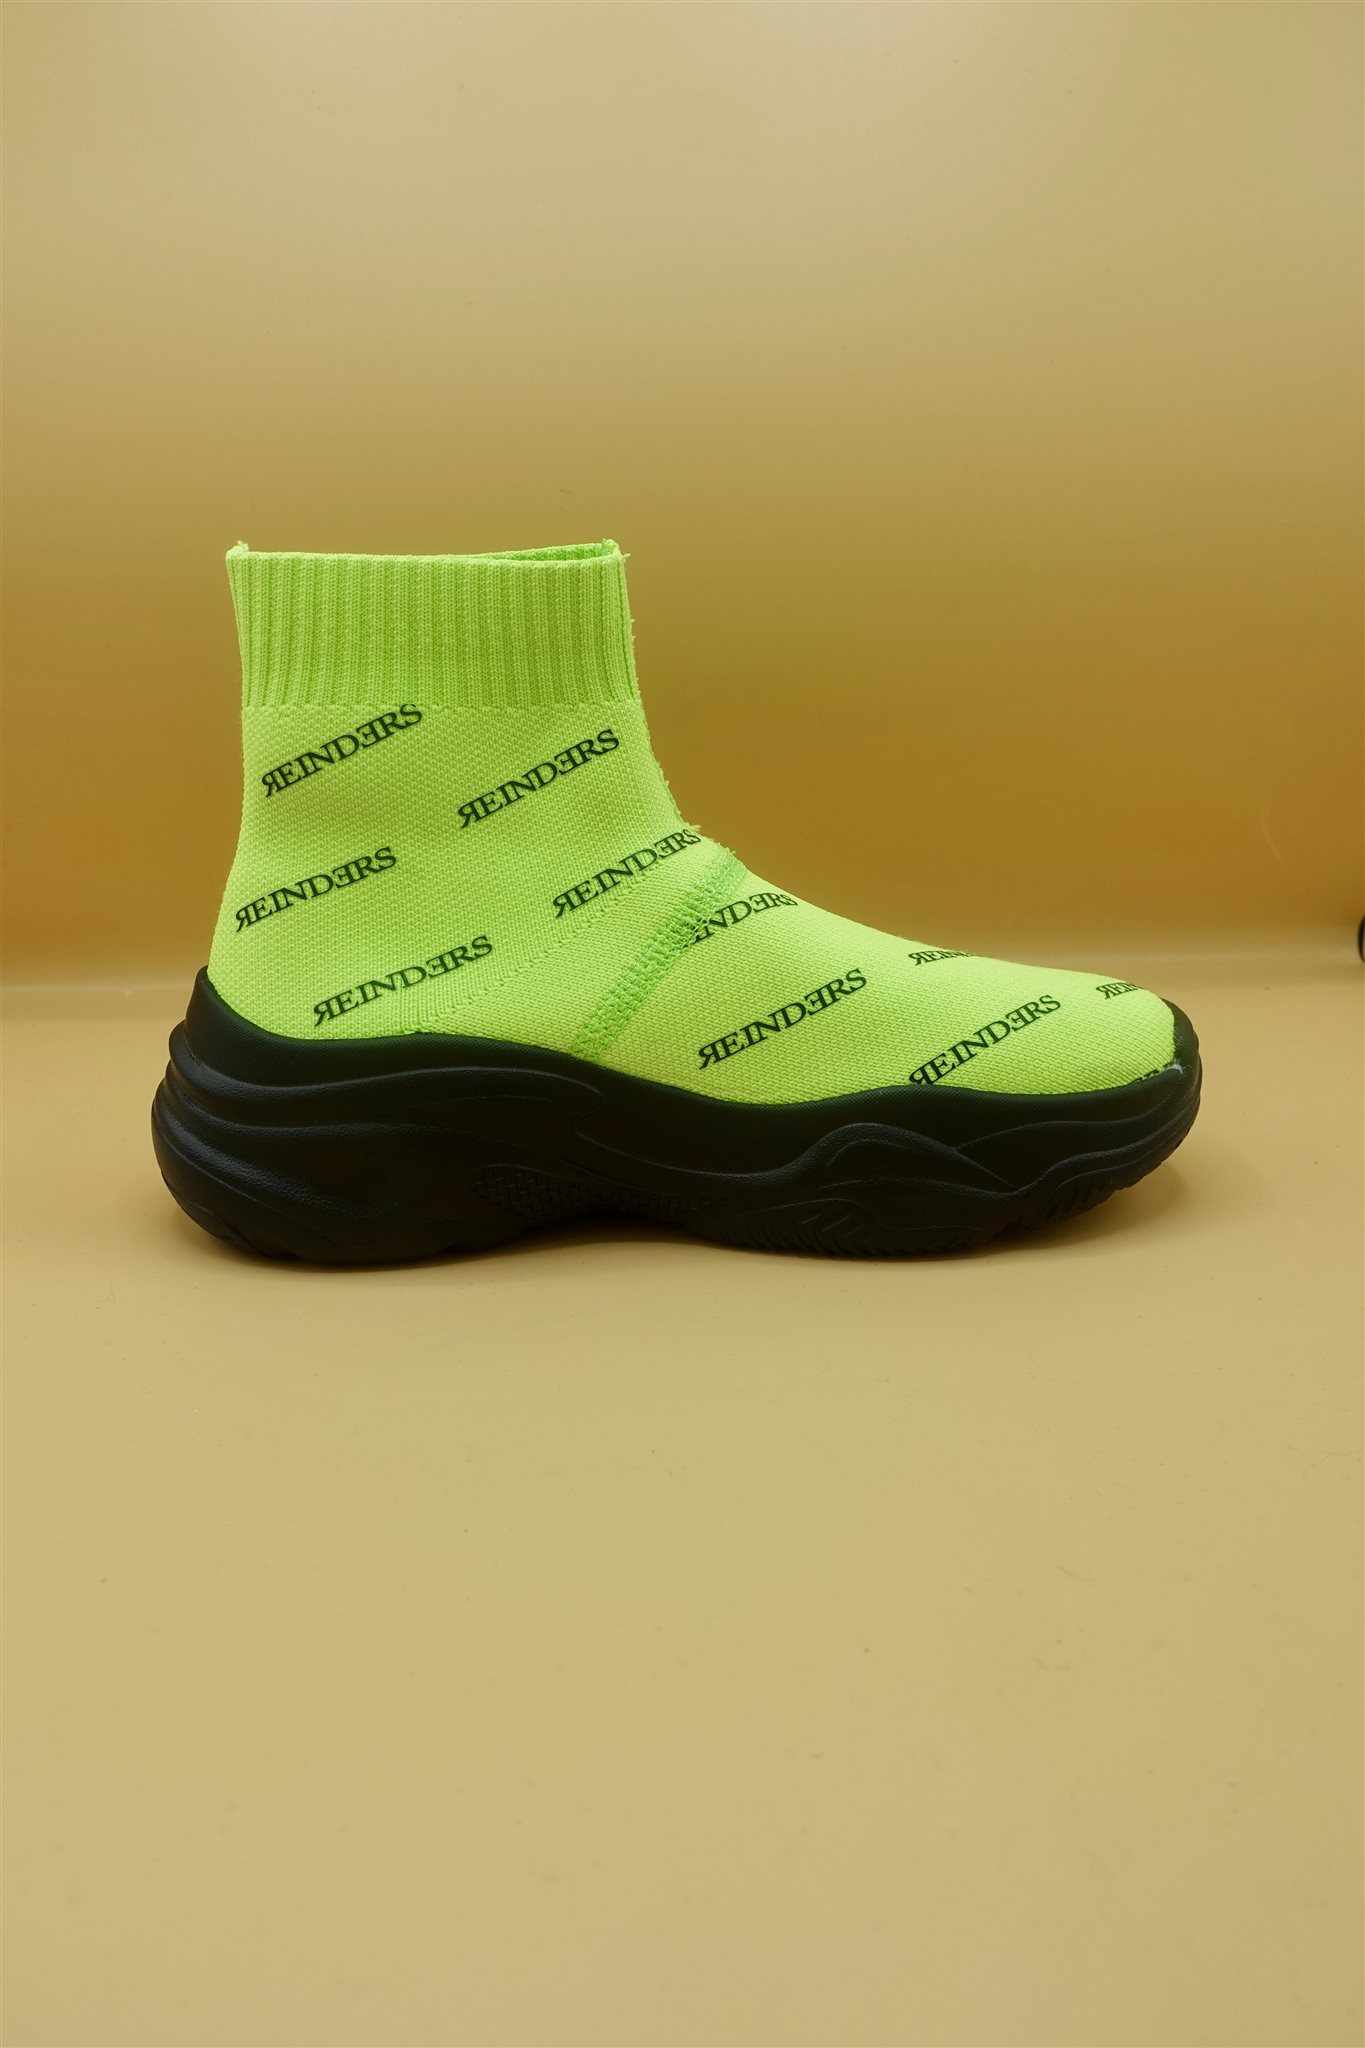 Reinders green neon shoes